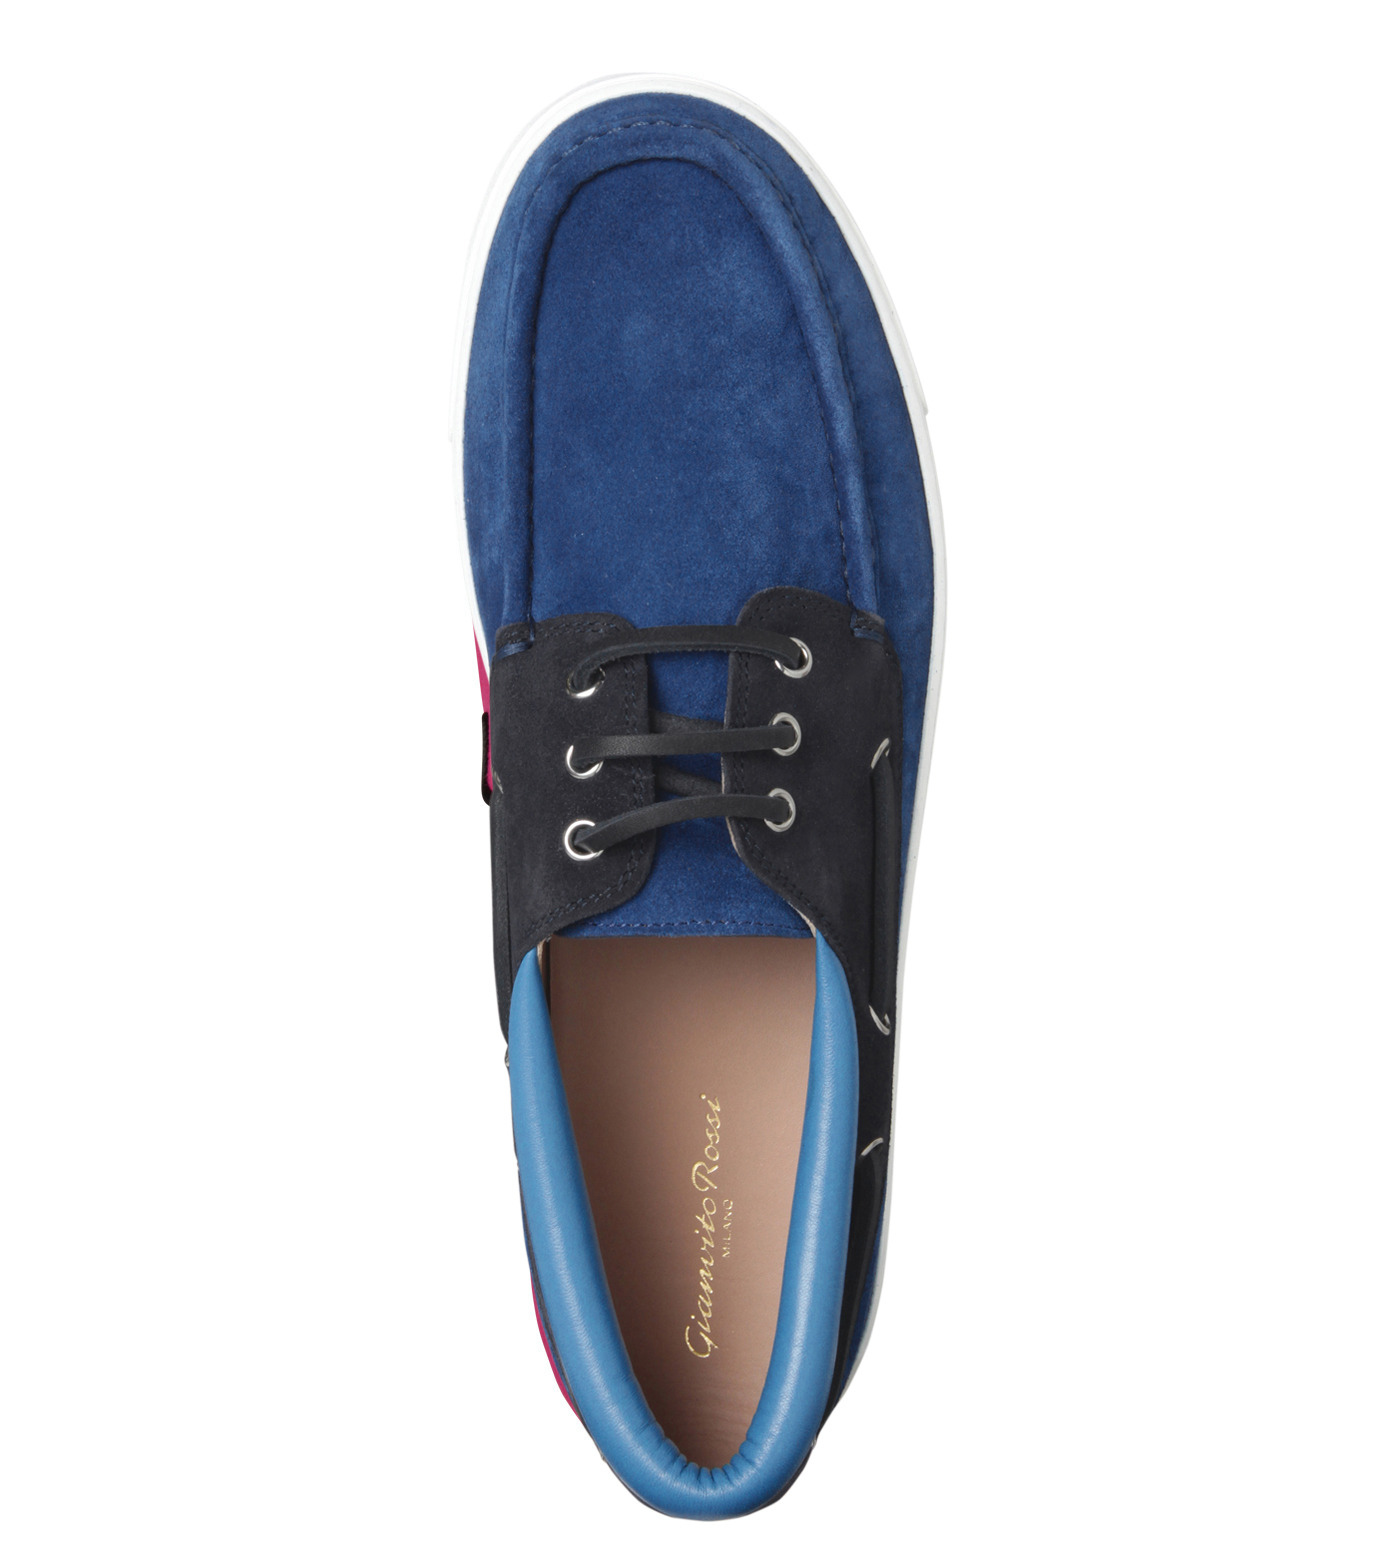 Gianvito Rossi(ジャンヴィト ロッシ)のMiddle Cut Deck Shoes-LIGHT BLUE(シューズ/shoes)-S20966-91 拡大詳細画像5